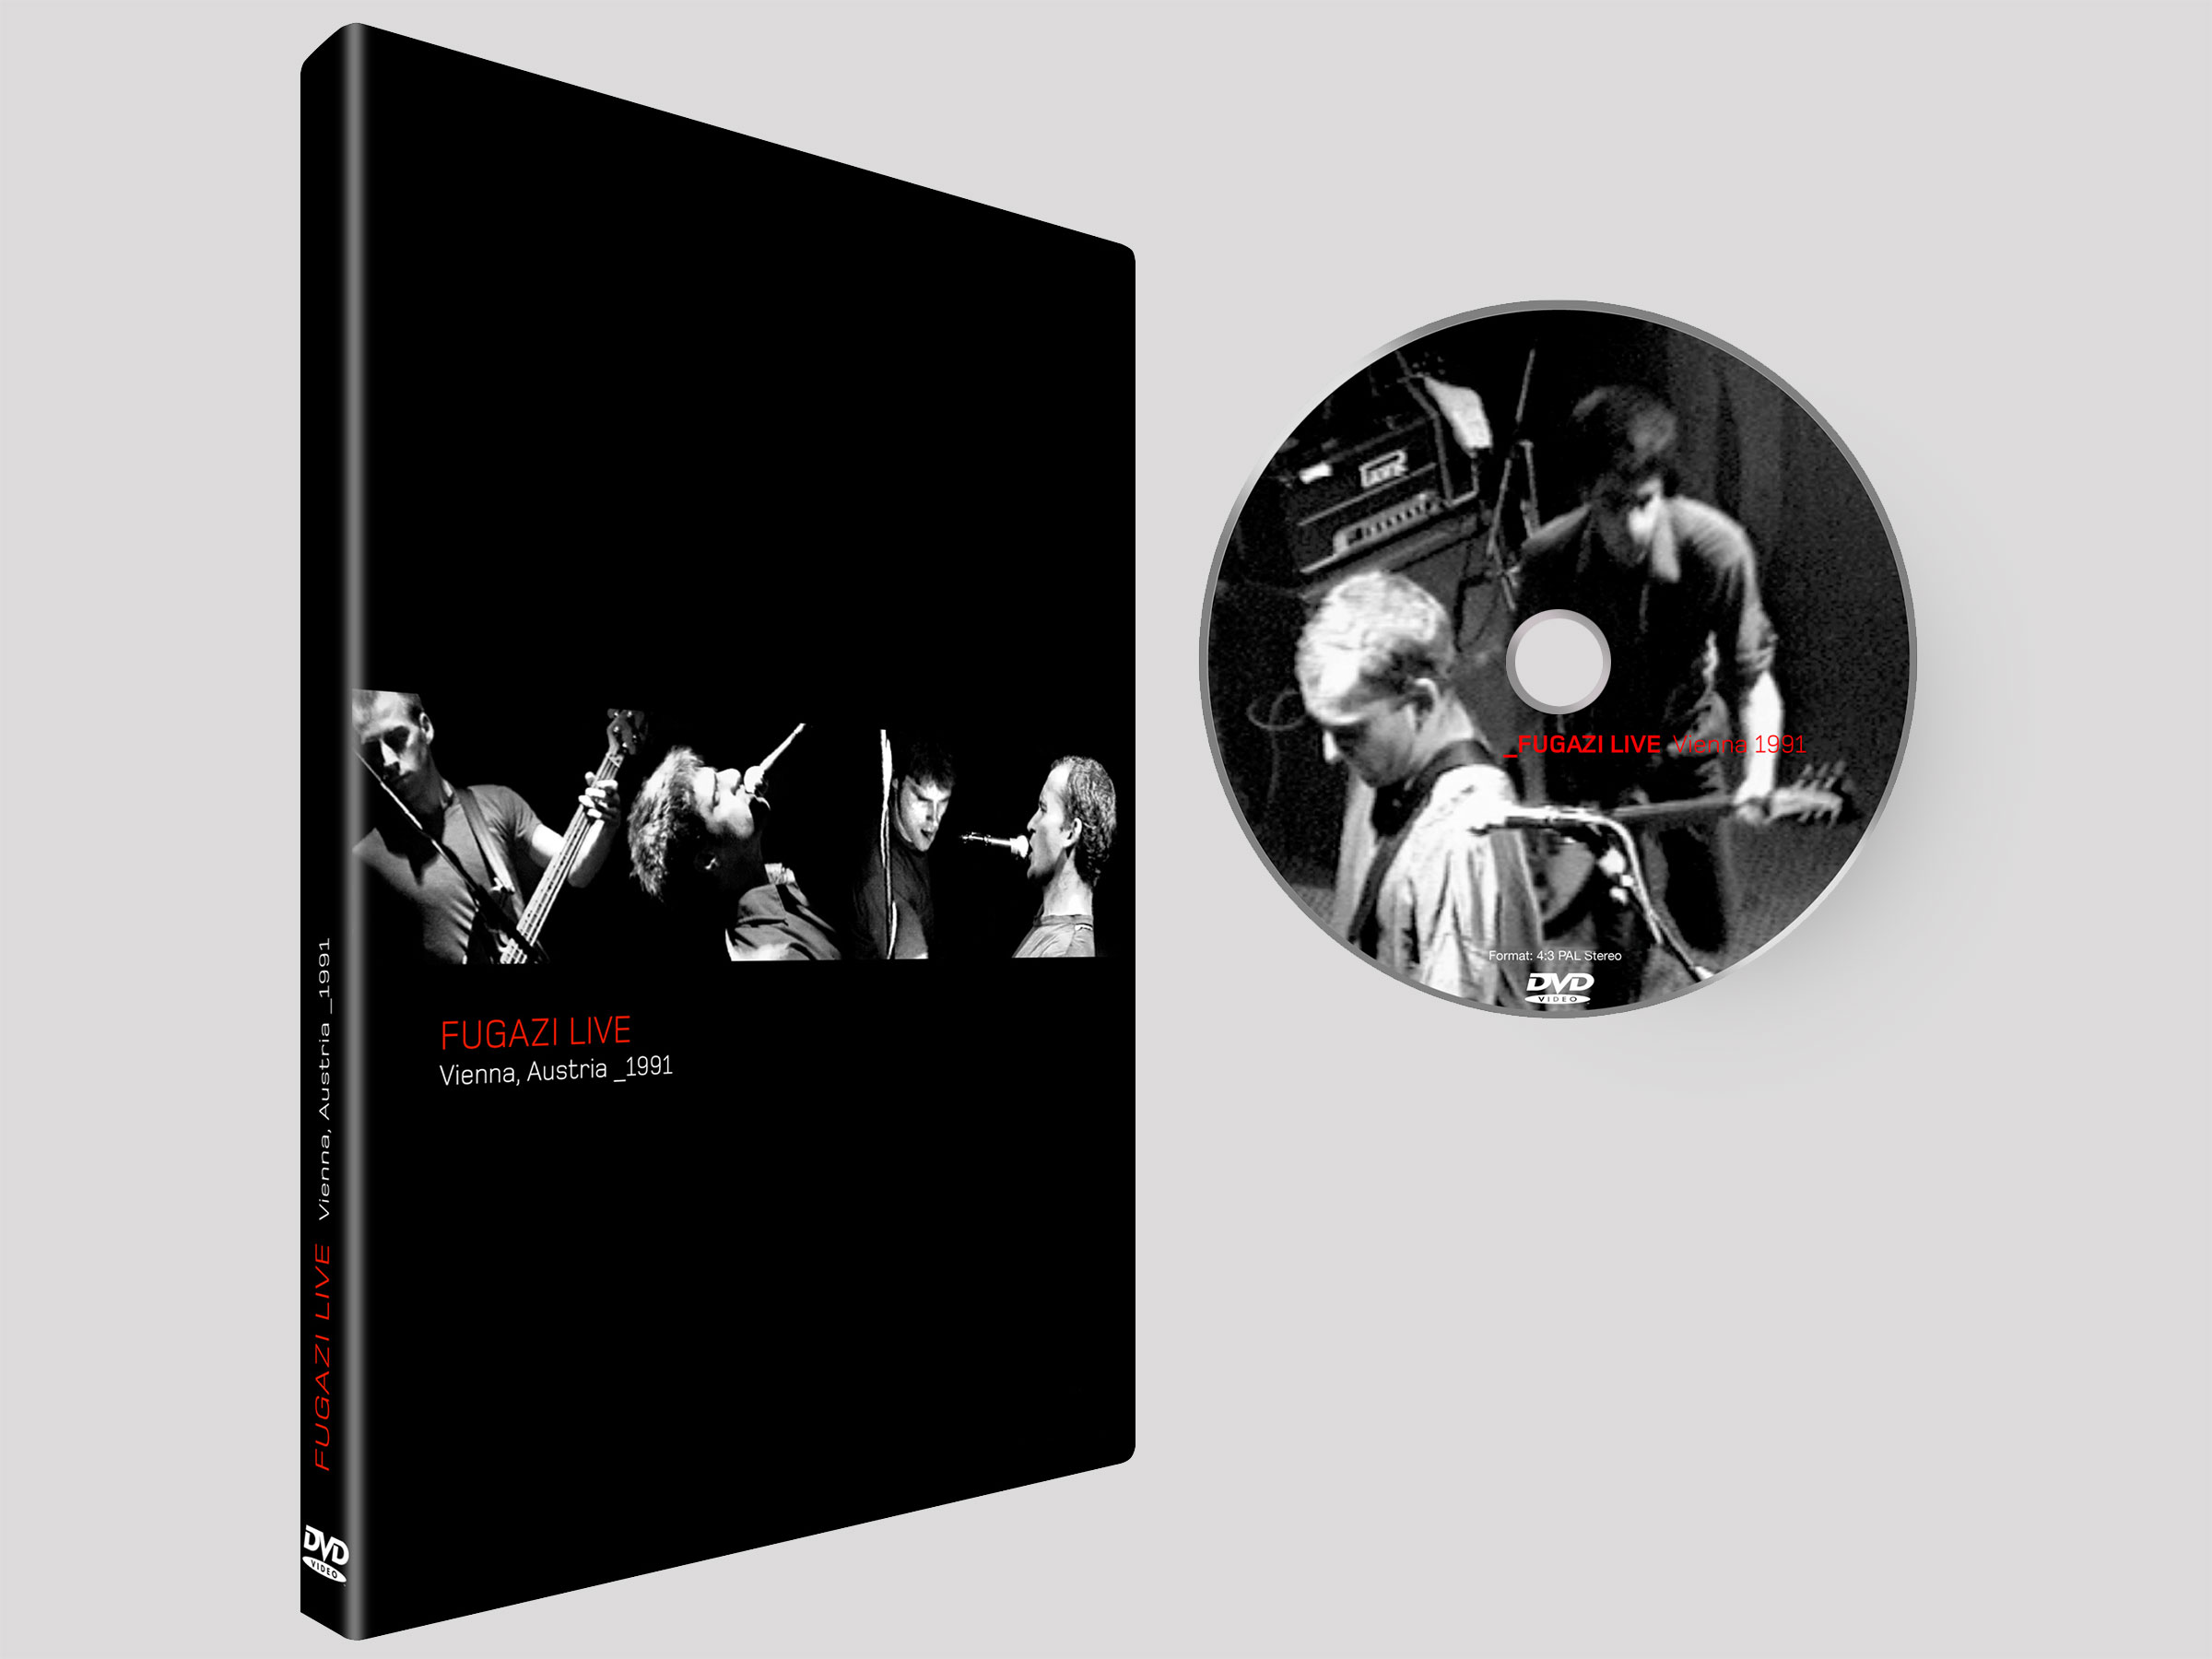 fugazi-live-vienna-1991-dischord-records-washington-dc-DVD